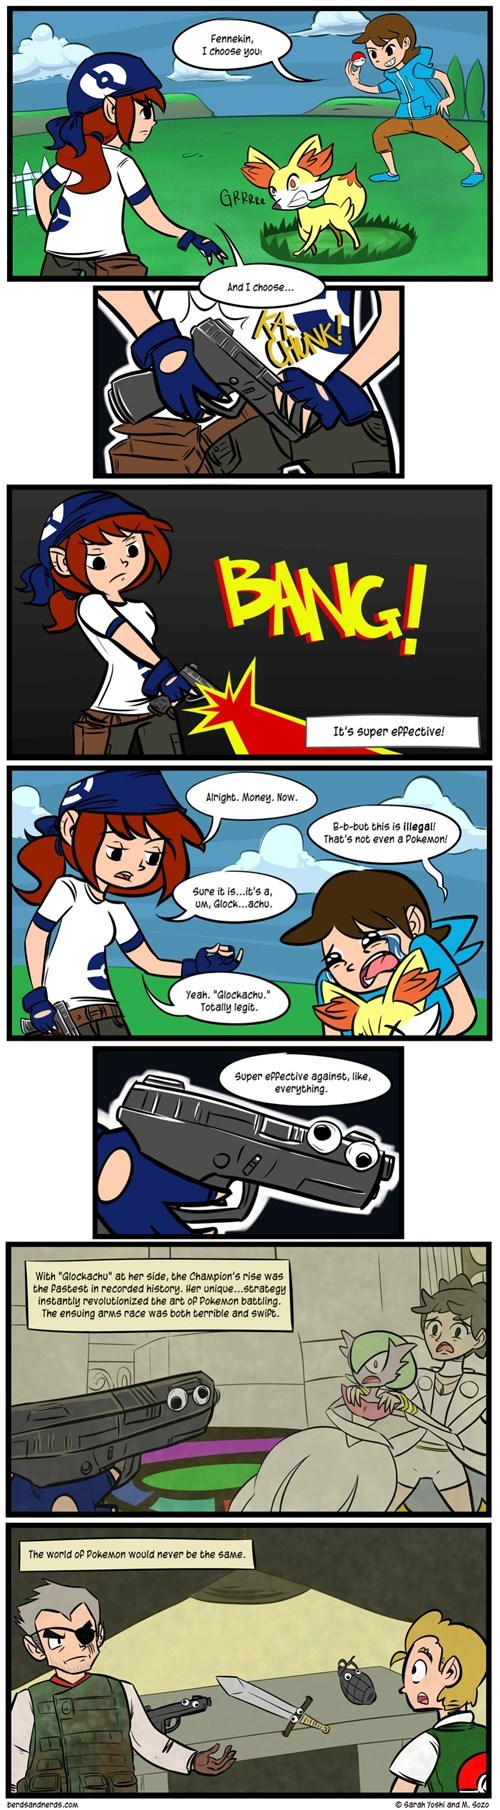 guns Pokémon web comics - 8046843136